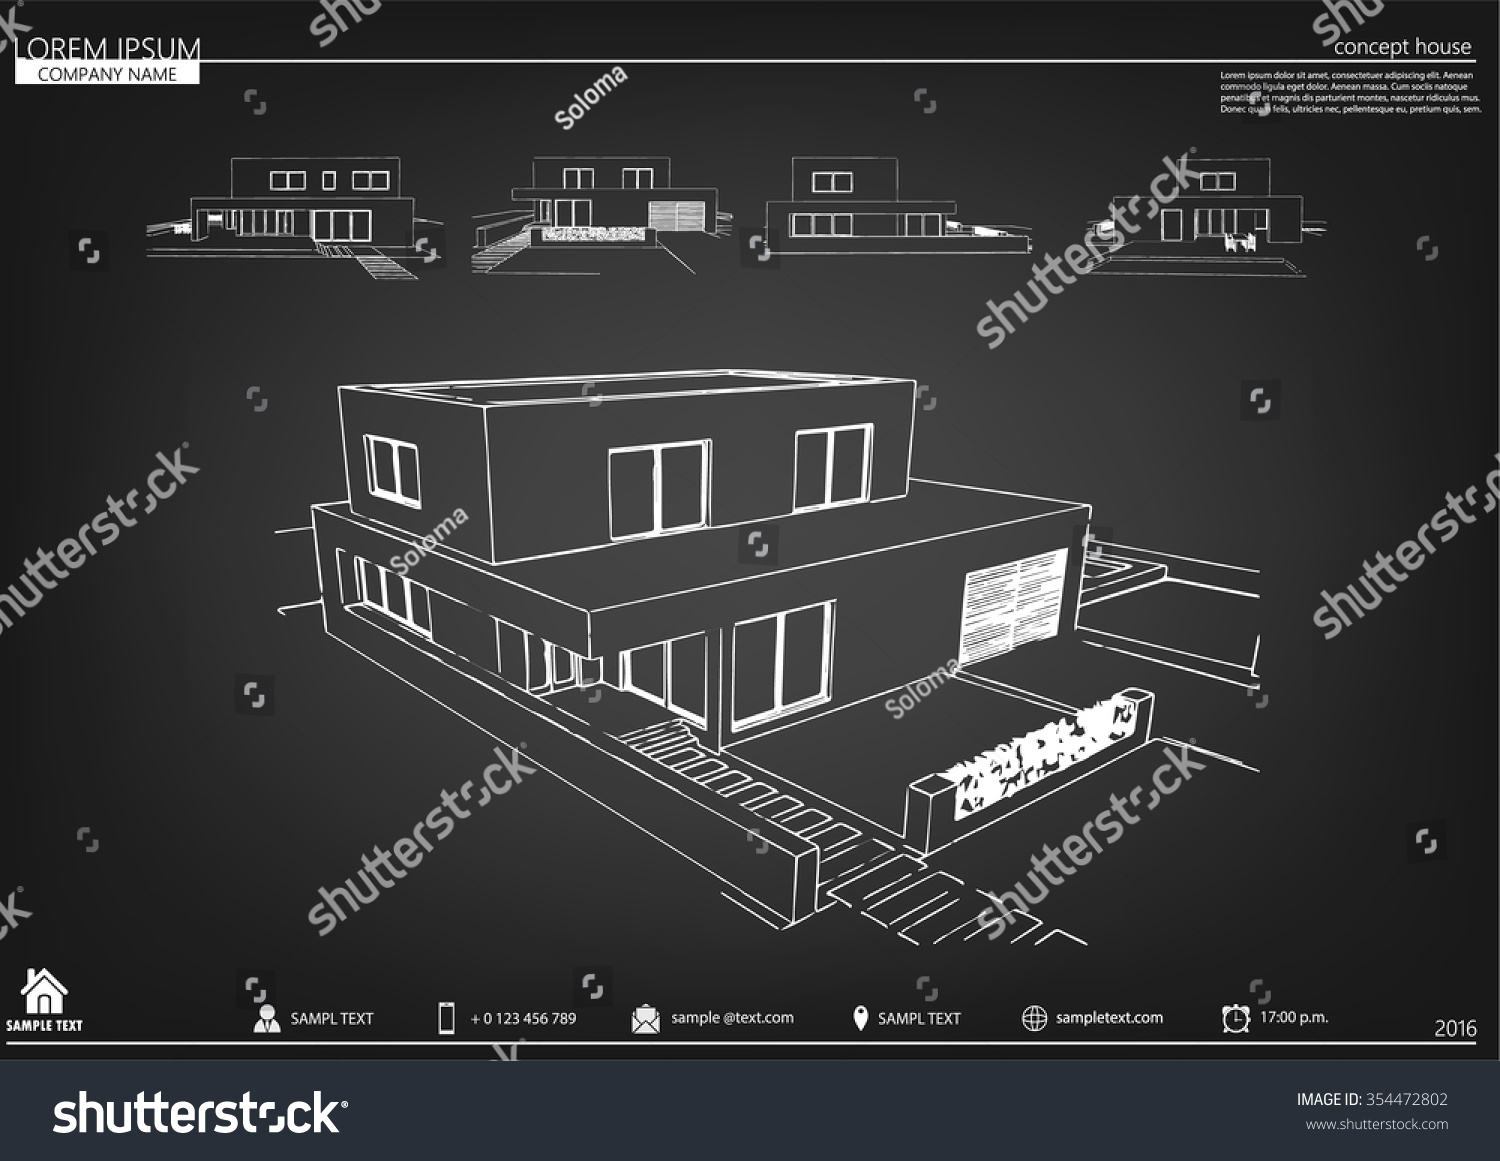 Wireframe blueprint drawing 3 d building vector stock photo photo wireframe blueprint drawing of 3d building vector architectural template background architectural drawing architectural malvernweather Image collections